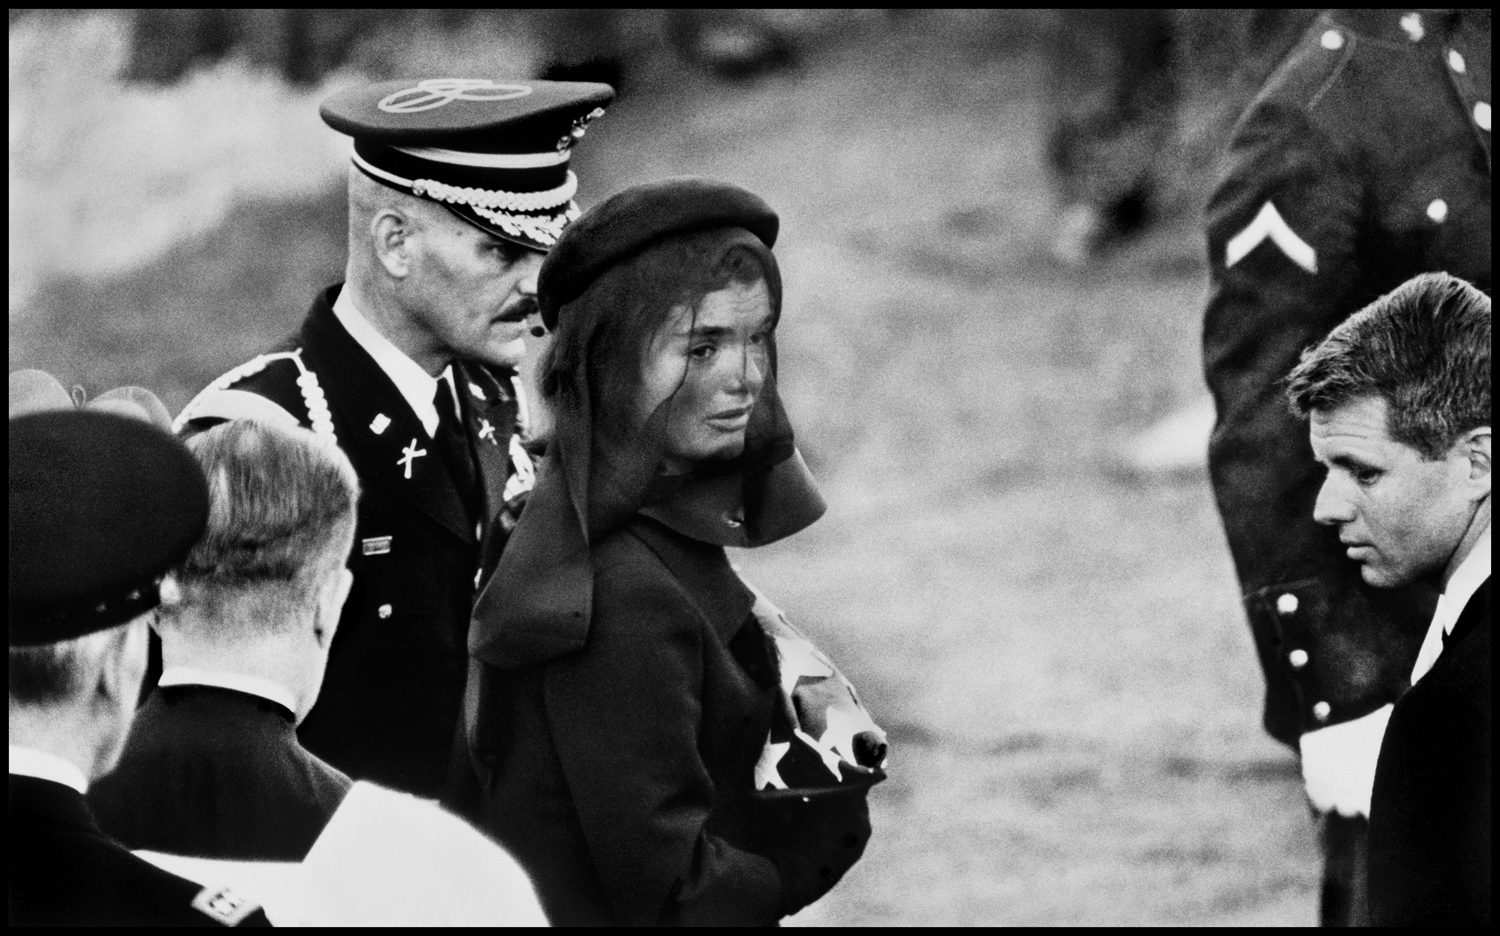 "Jackie Kennedy, Arlington, Virginia, 1963. ""During the Kennedy administration, I was for a period accredited to the White House and took some pictures connected to President Kennedy. When he was assassinated, I covered the funeral along with a few thousand other people and got this rather special picture of Jackie Kennedy at the graveside."""